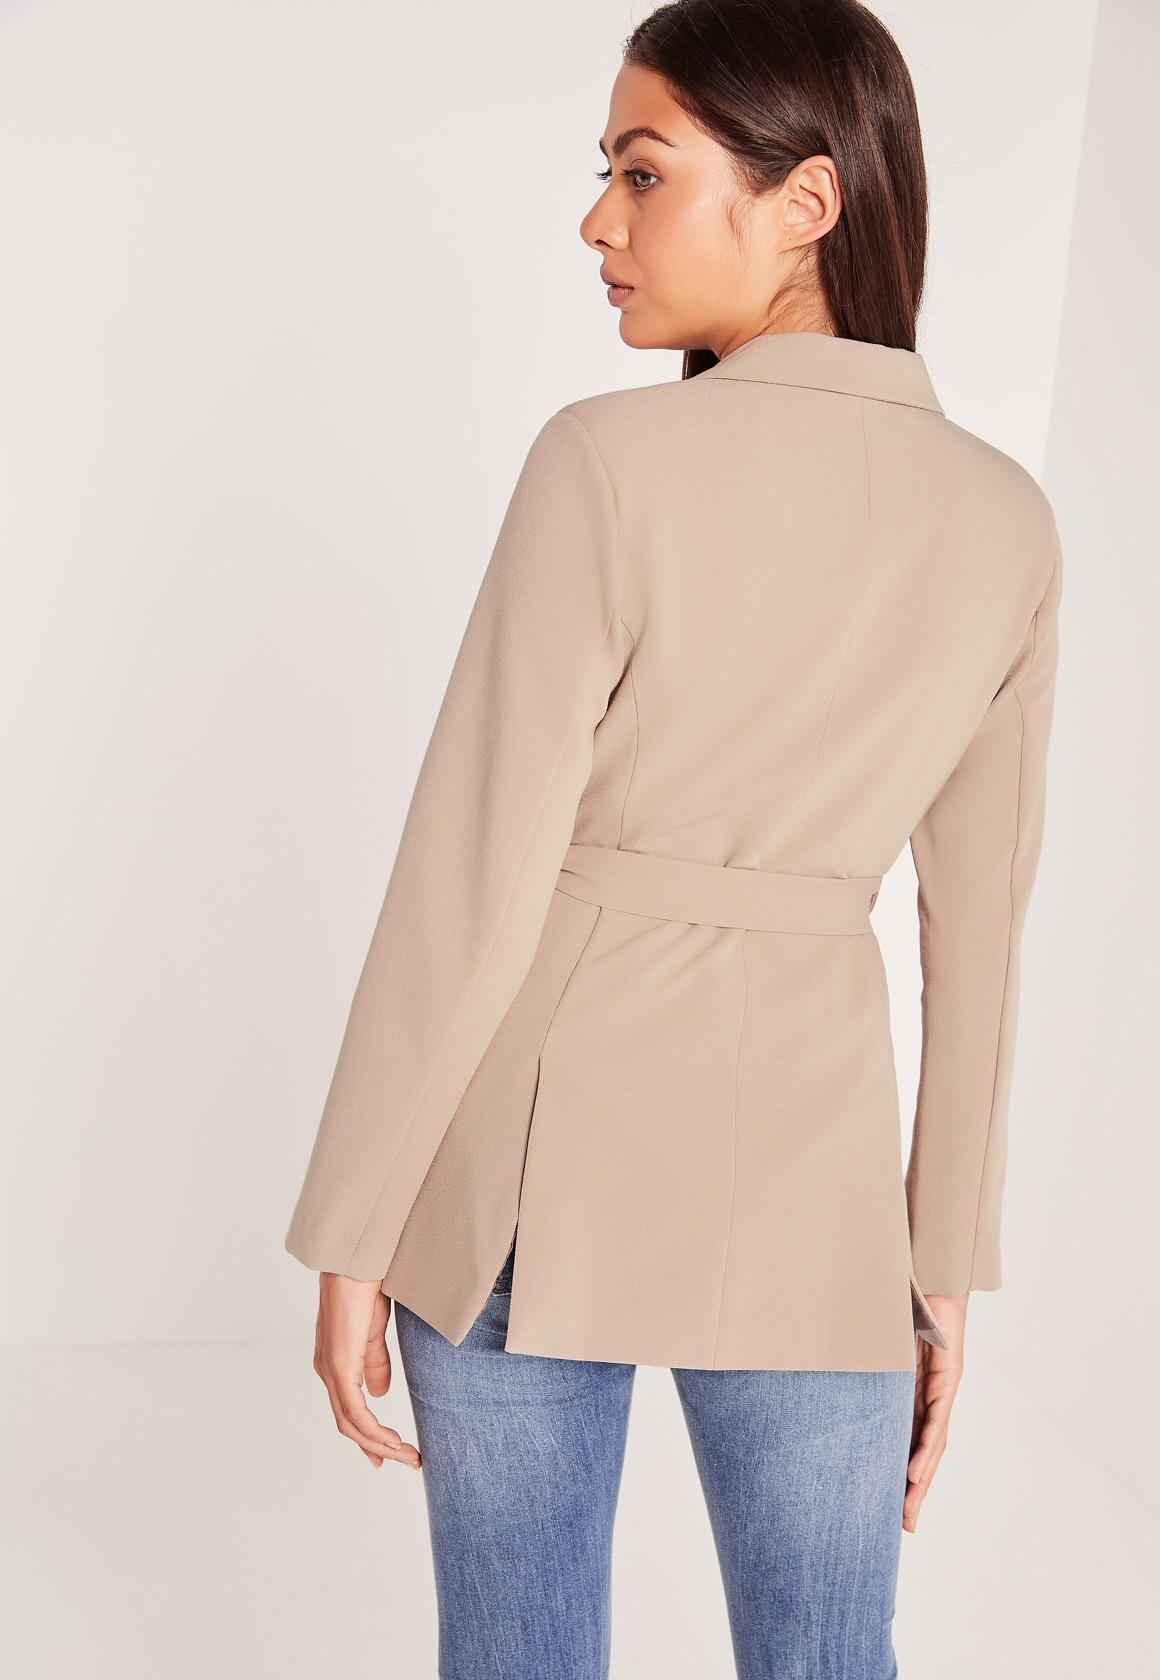 Missguided Tie Waist Double Breasted Blazer Cheap Price Top Quality Free Shipping Countdown Package Cheap New Arrival Countdown Package Cheap Online Free Shipping Geniue Stockist pmlwZ3